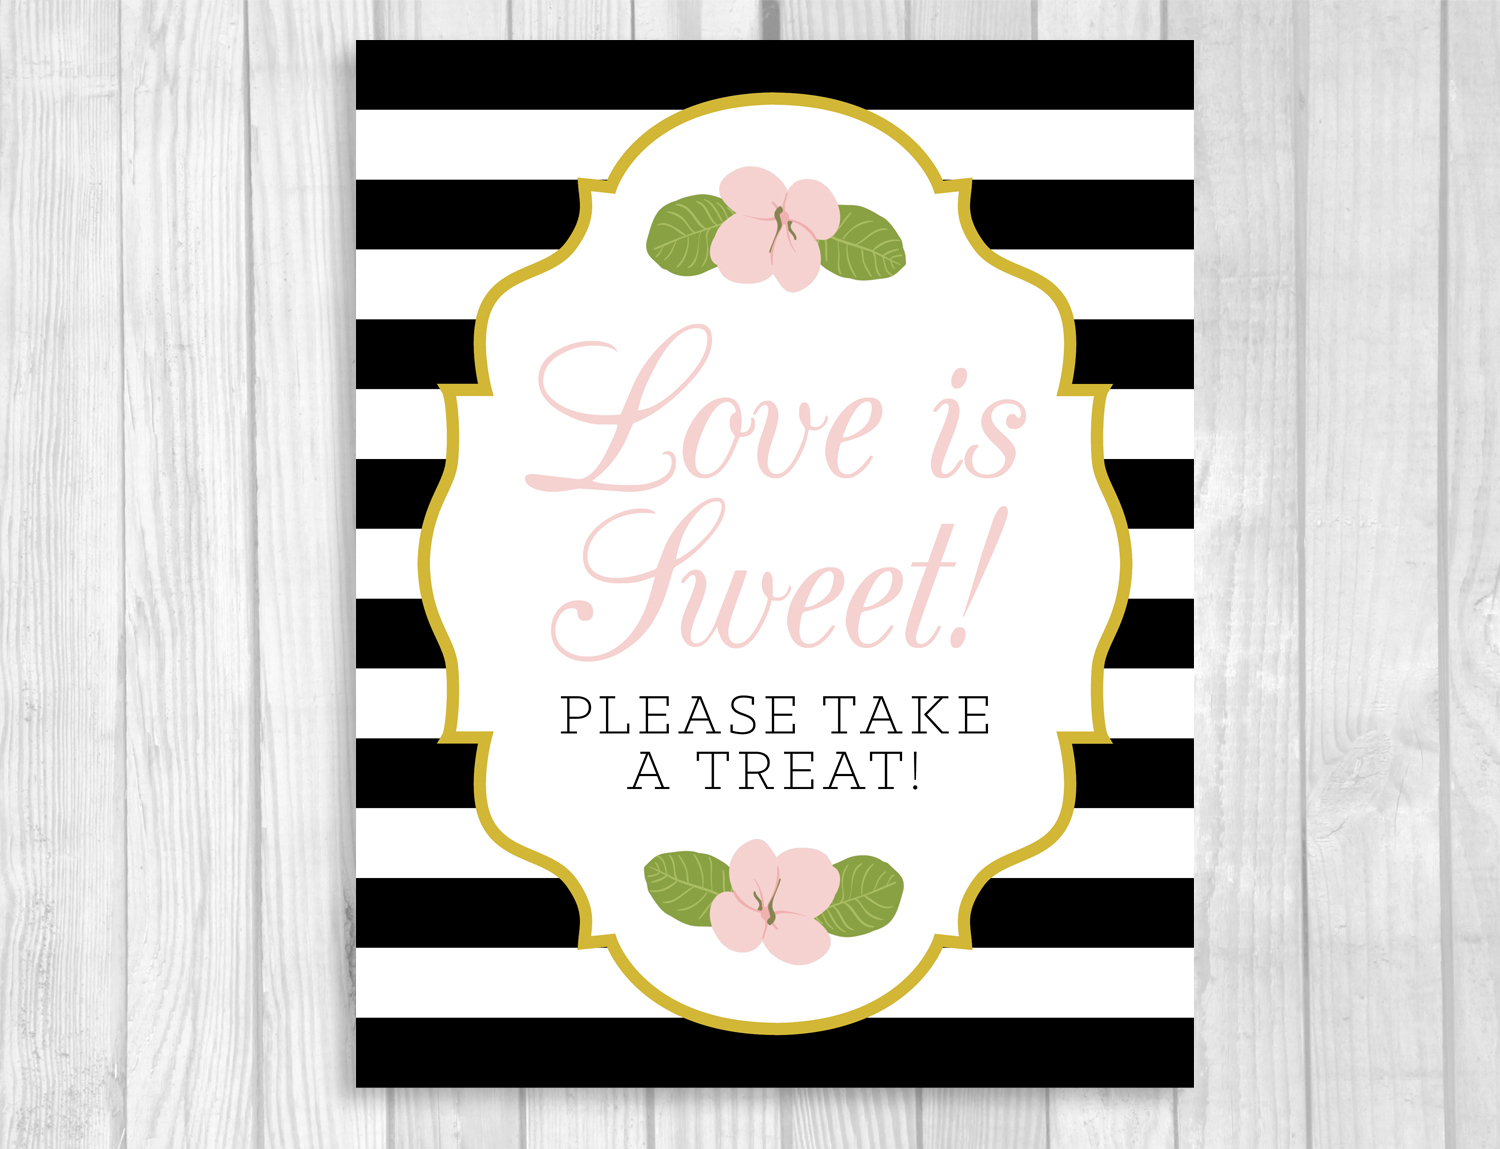 Weddings by susan black and white striped printable bridal shower black and white striped printable bridal shower signs with gold borders and pink floral accents dhlflorist Choice Image